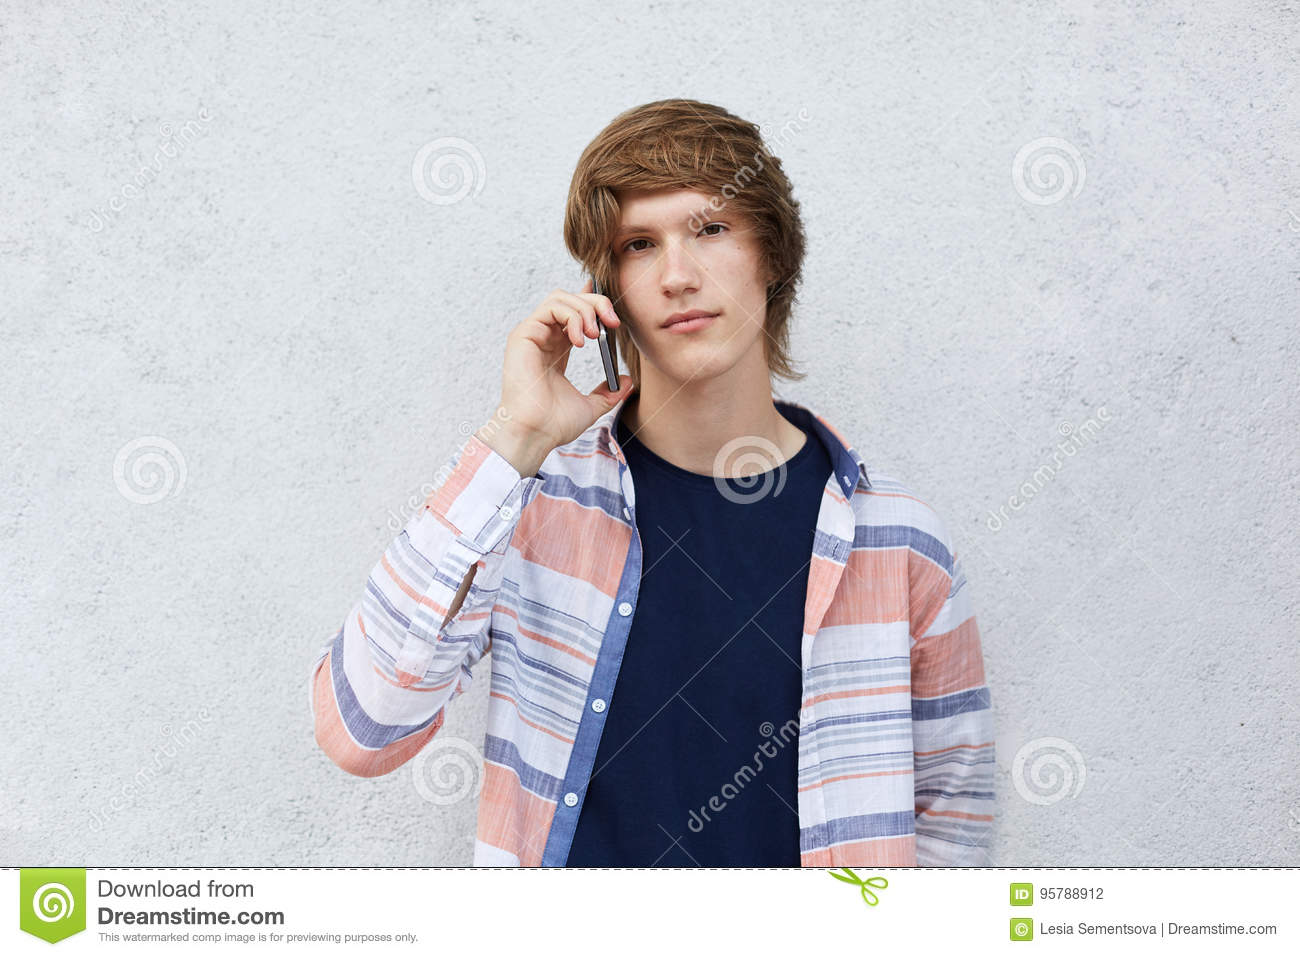 Hipster Boy With Dark Eyes And Stylish Hairstyle Having Serious